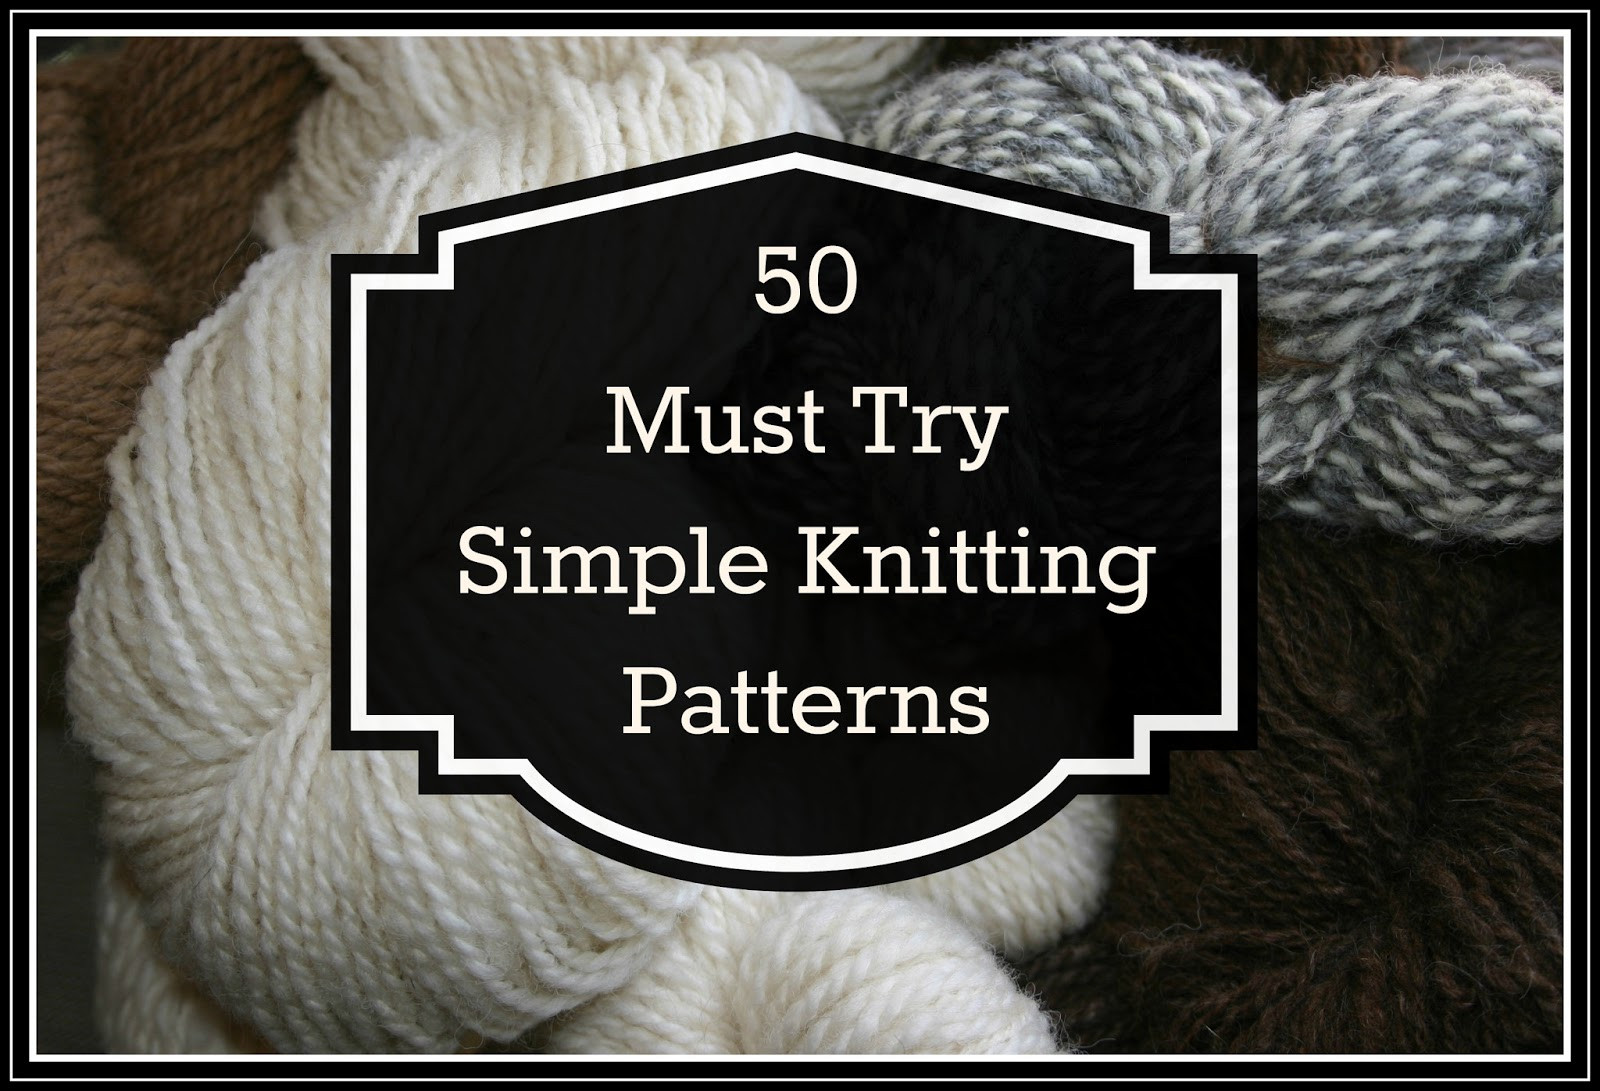 Best Of 50 Must Try Simple Knitting Patterns the Knit Wit by Shair Simple Knitting Patterns Of Wonderful 42 Pictures Simple Knitting Patterns